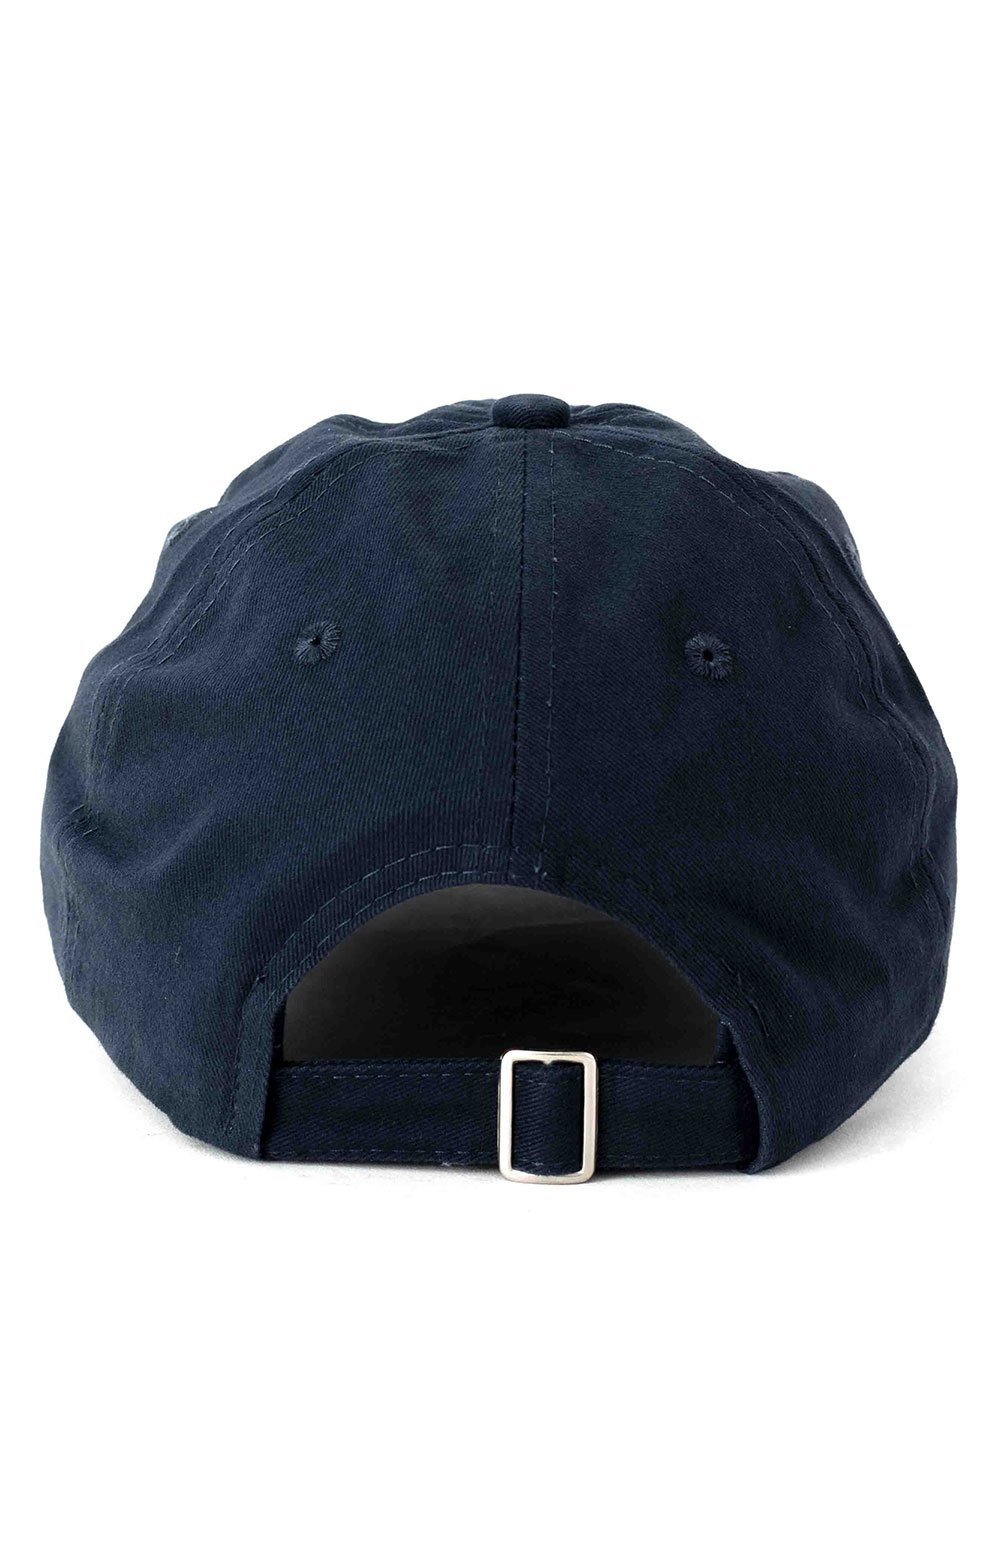 Unstructured Ball Cap - Navy  3